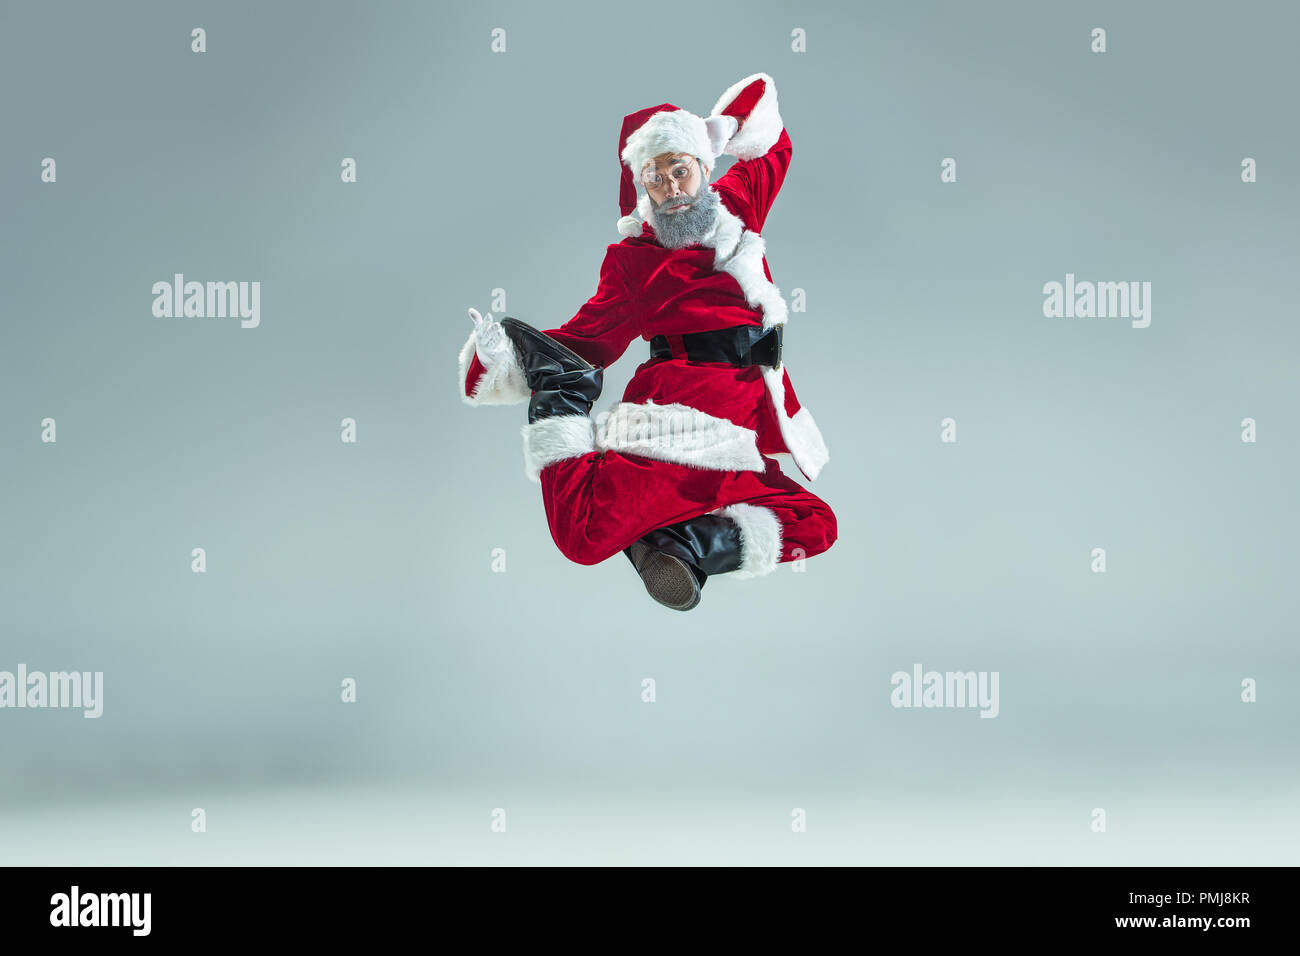 98bf99b2269 ... arriving 6f35f c6b1c Funny serious guy with christmas hat dancing at  studio.